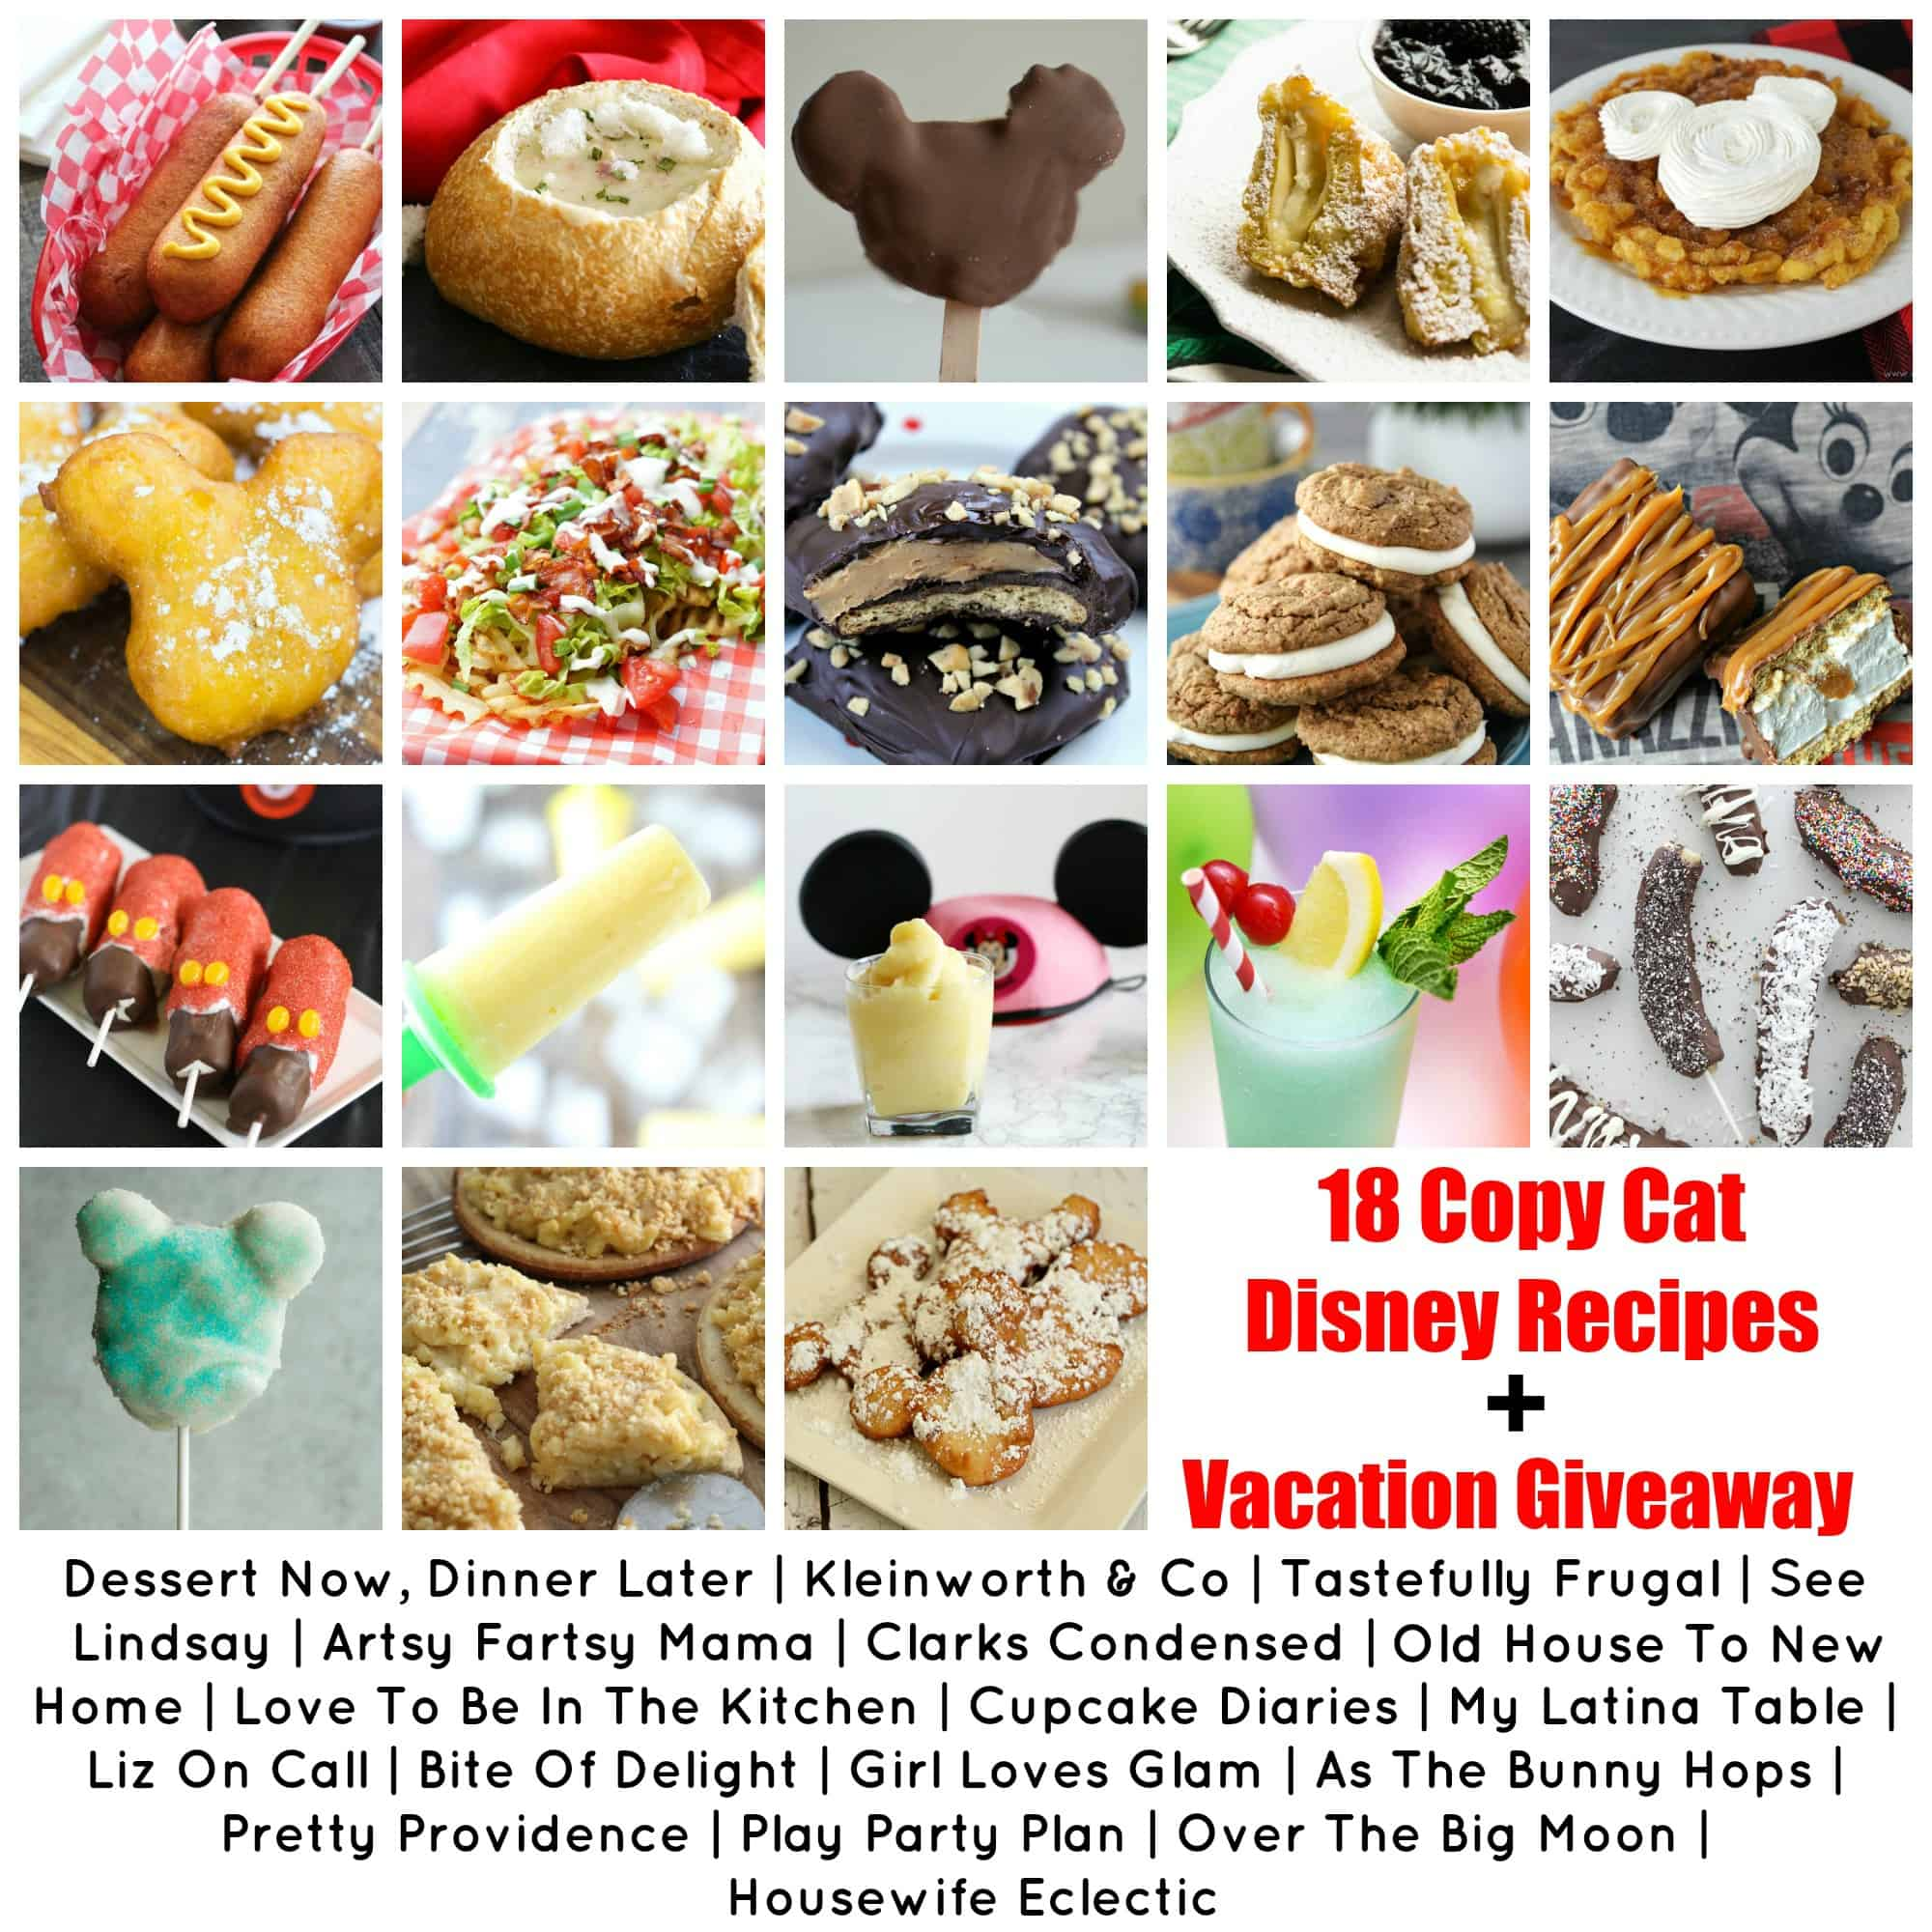 18 Copy Cat Disney Recipes AND Southern California Vacation Giveaway